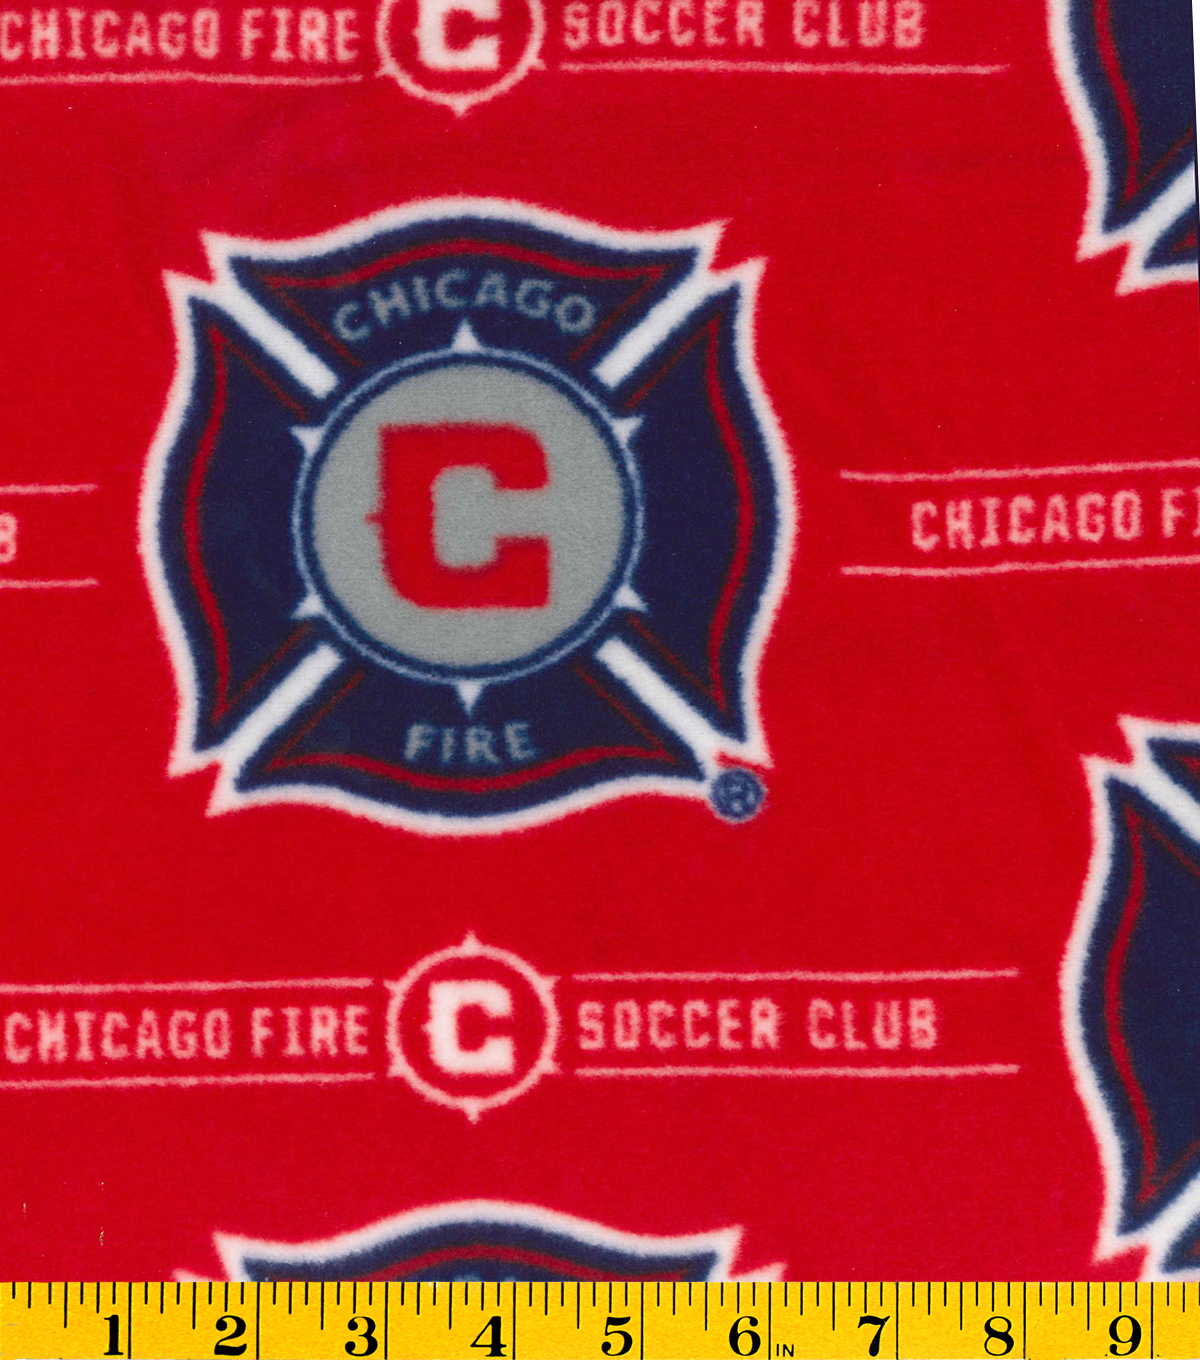 Chicago fire soccer club mls fleece fabric joann chicago fire soccer club fleece fabric 58u0022 logo biocorpaavc Images